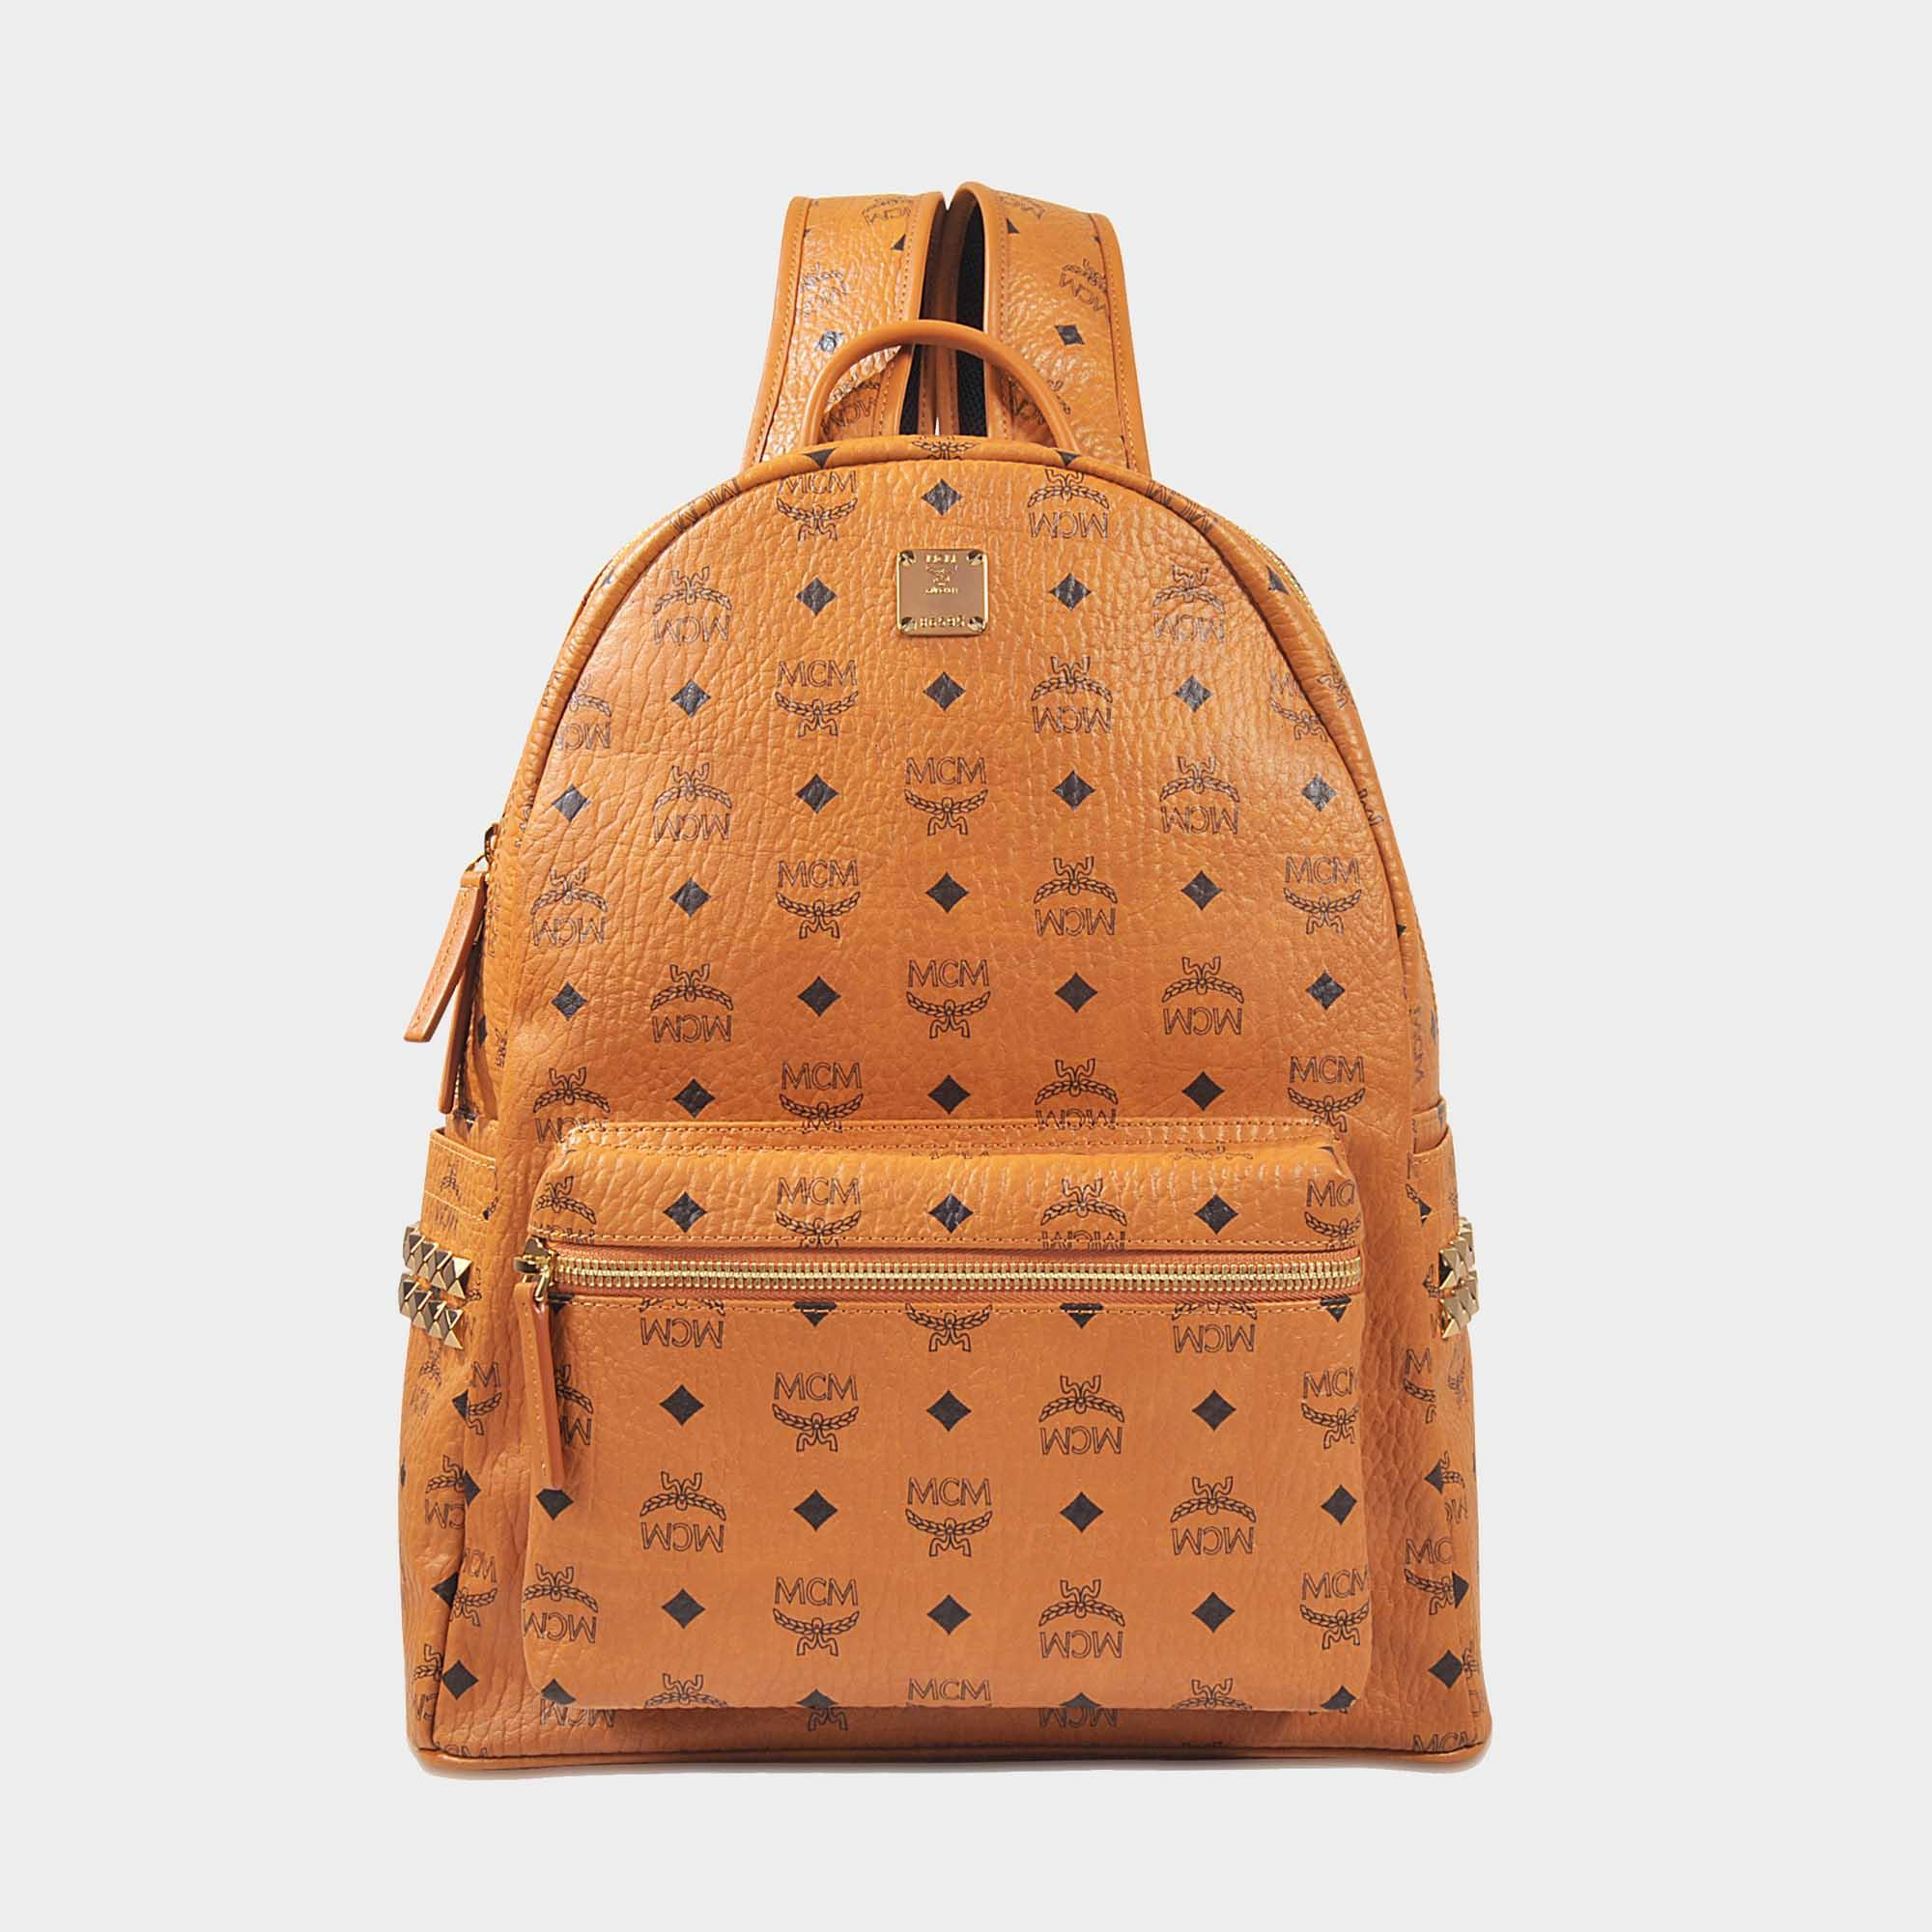 6e908ee1c56cc Lyst - MCM Stark Medium Backpack in Cognac Coated Canvas in Braun